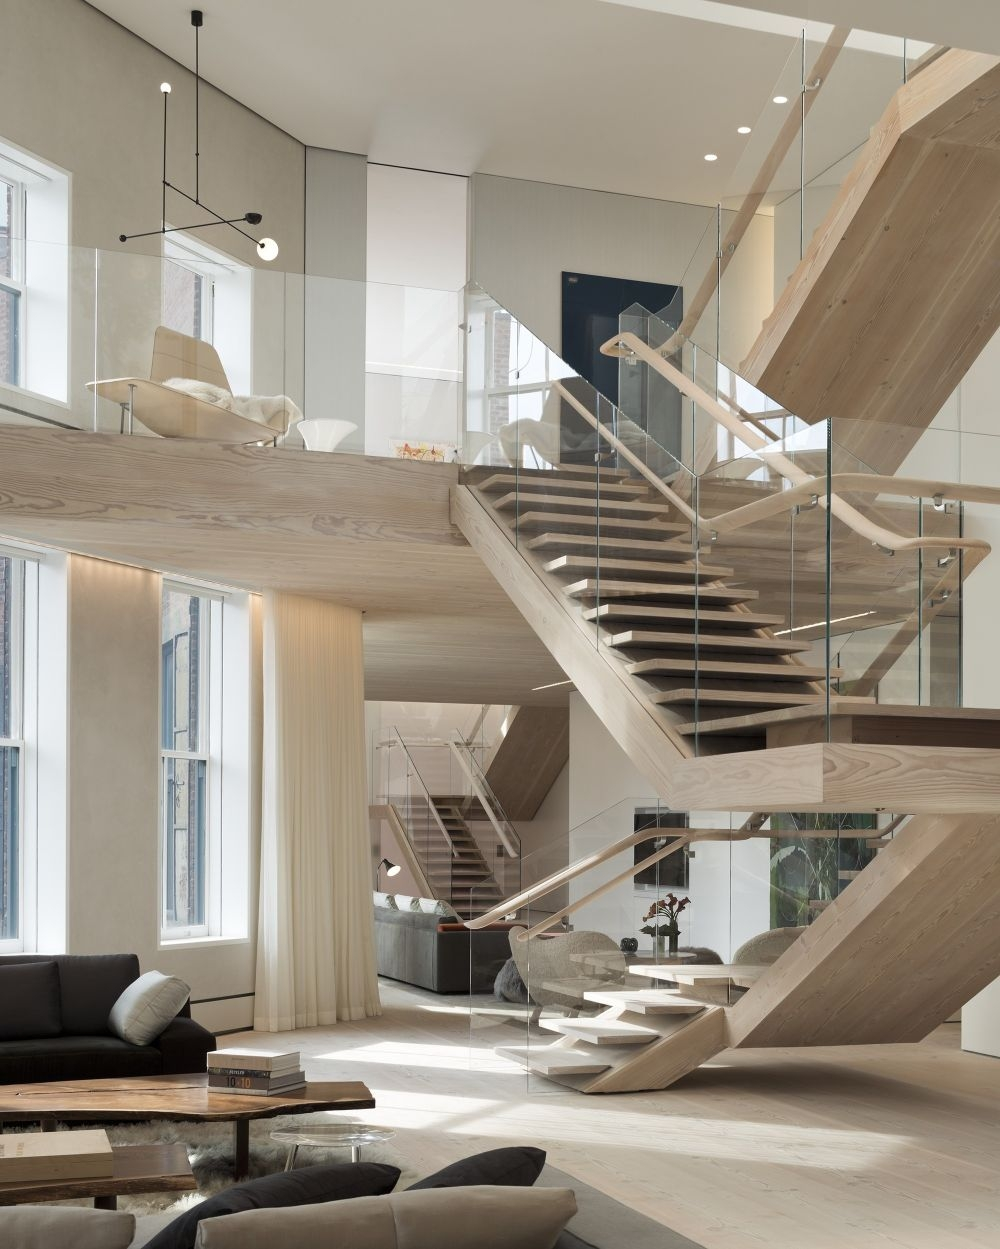 Staircase Designs That Bring Out The Beauty In Every Home | Designs Of Stairs Inside House | Interior | 2Nd Floor | Duplex | Recent | House Indoor